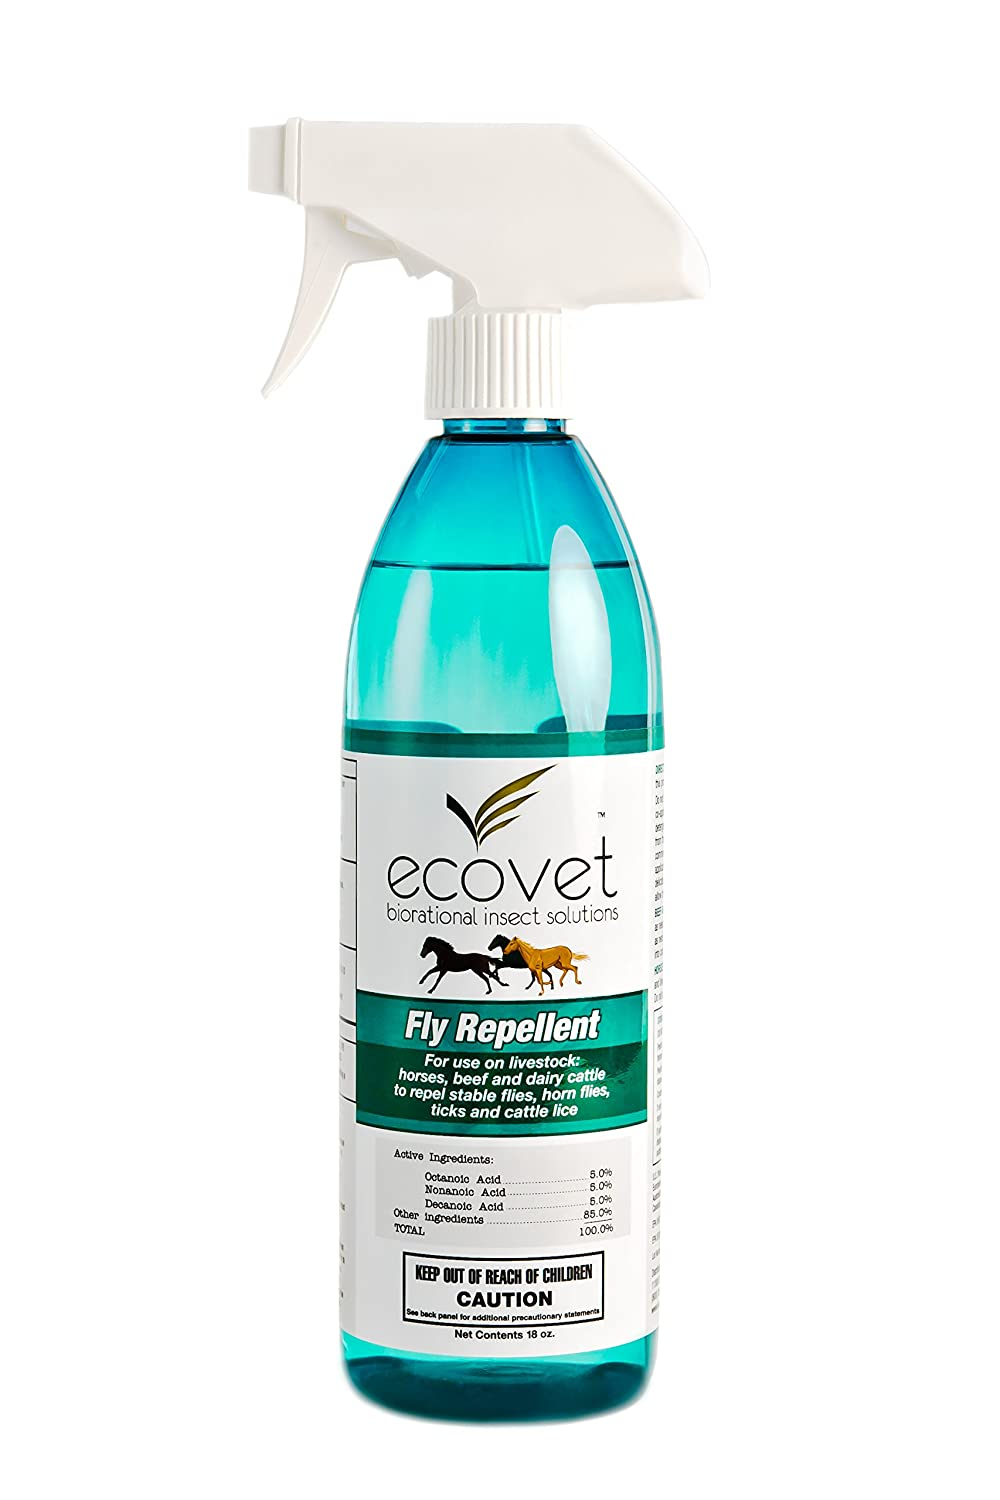 ECOVET 23855 077002 Ecovet Fly 18 Repellent, 18 Fly oz fda877